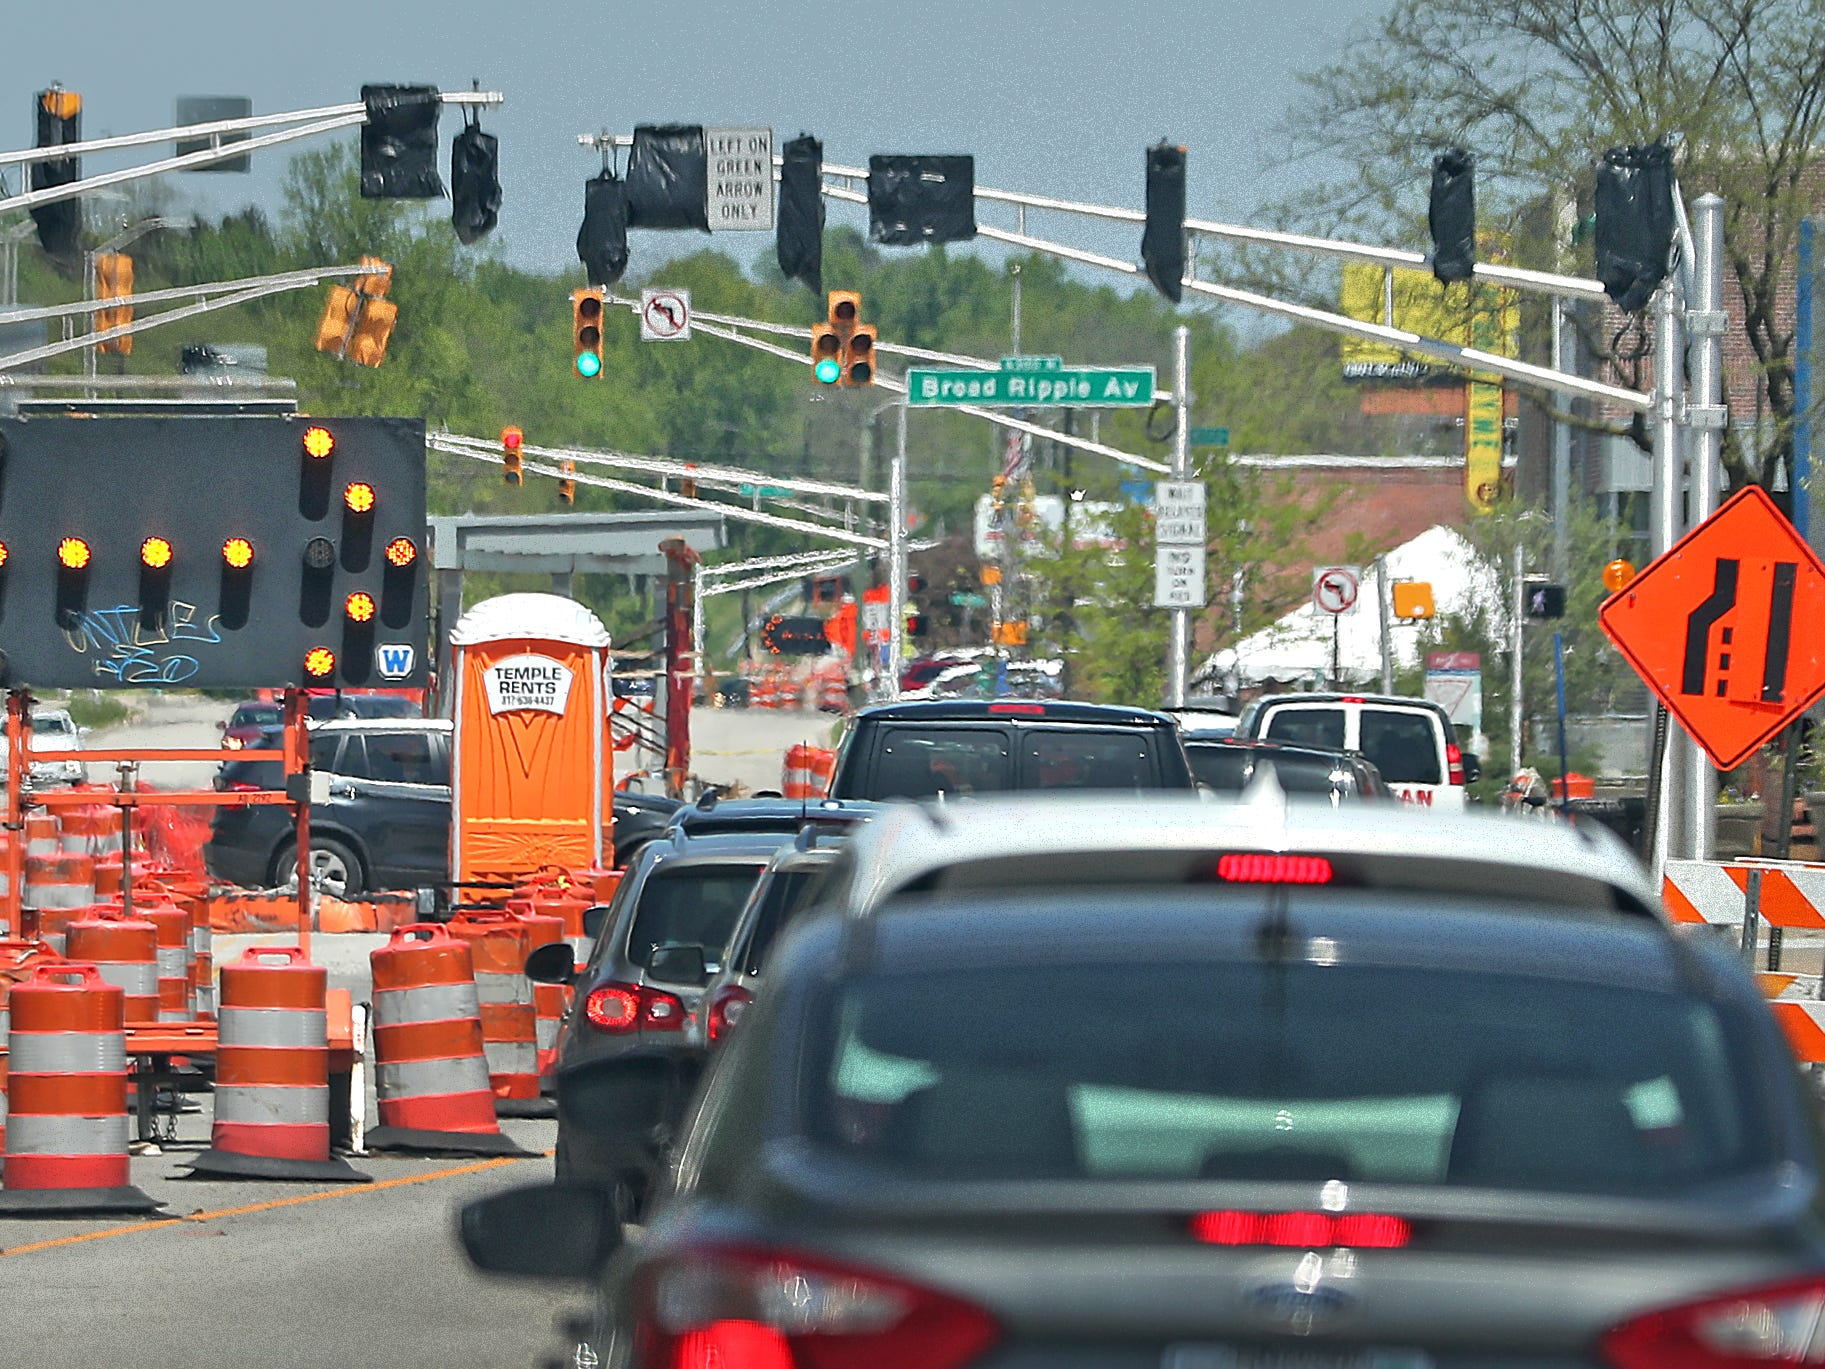 Cars move north past Red Line construction near Broad Ripple on College Ave., Sunday, May 5, 2019.  The City has updated the timeline when the Red Line Bus Rapid Transit system should open, which is later in 2019 summer.